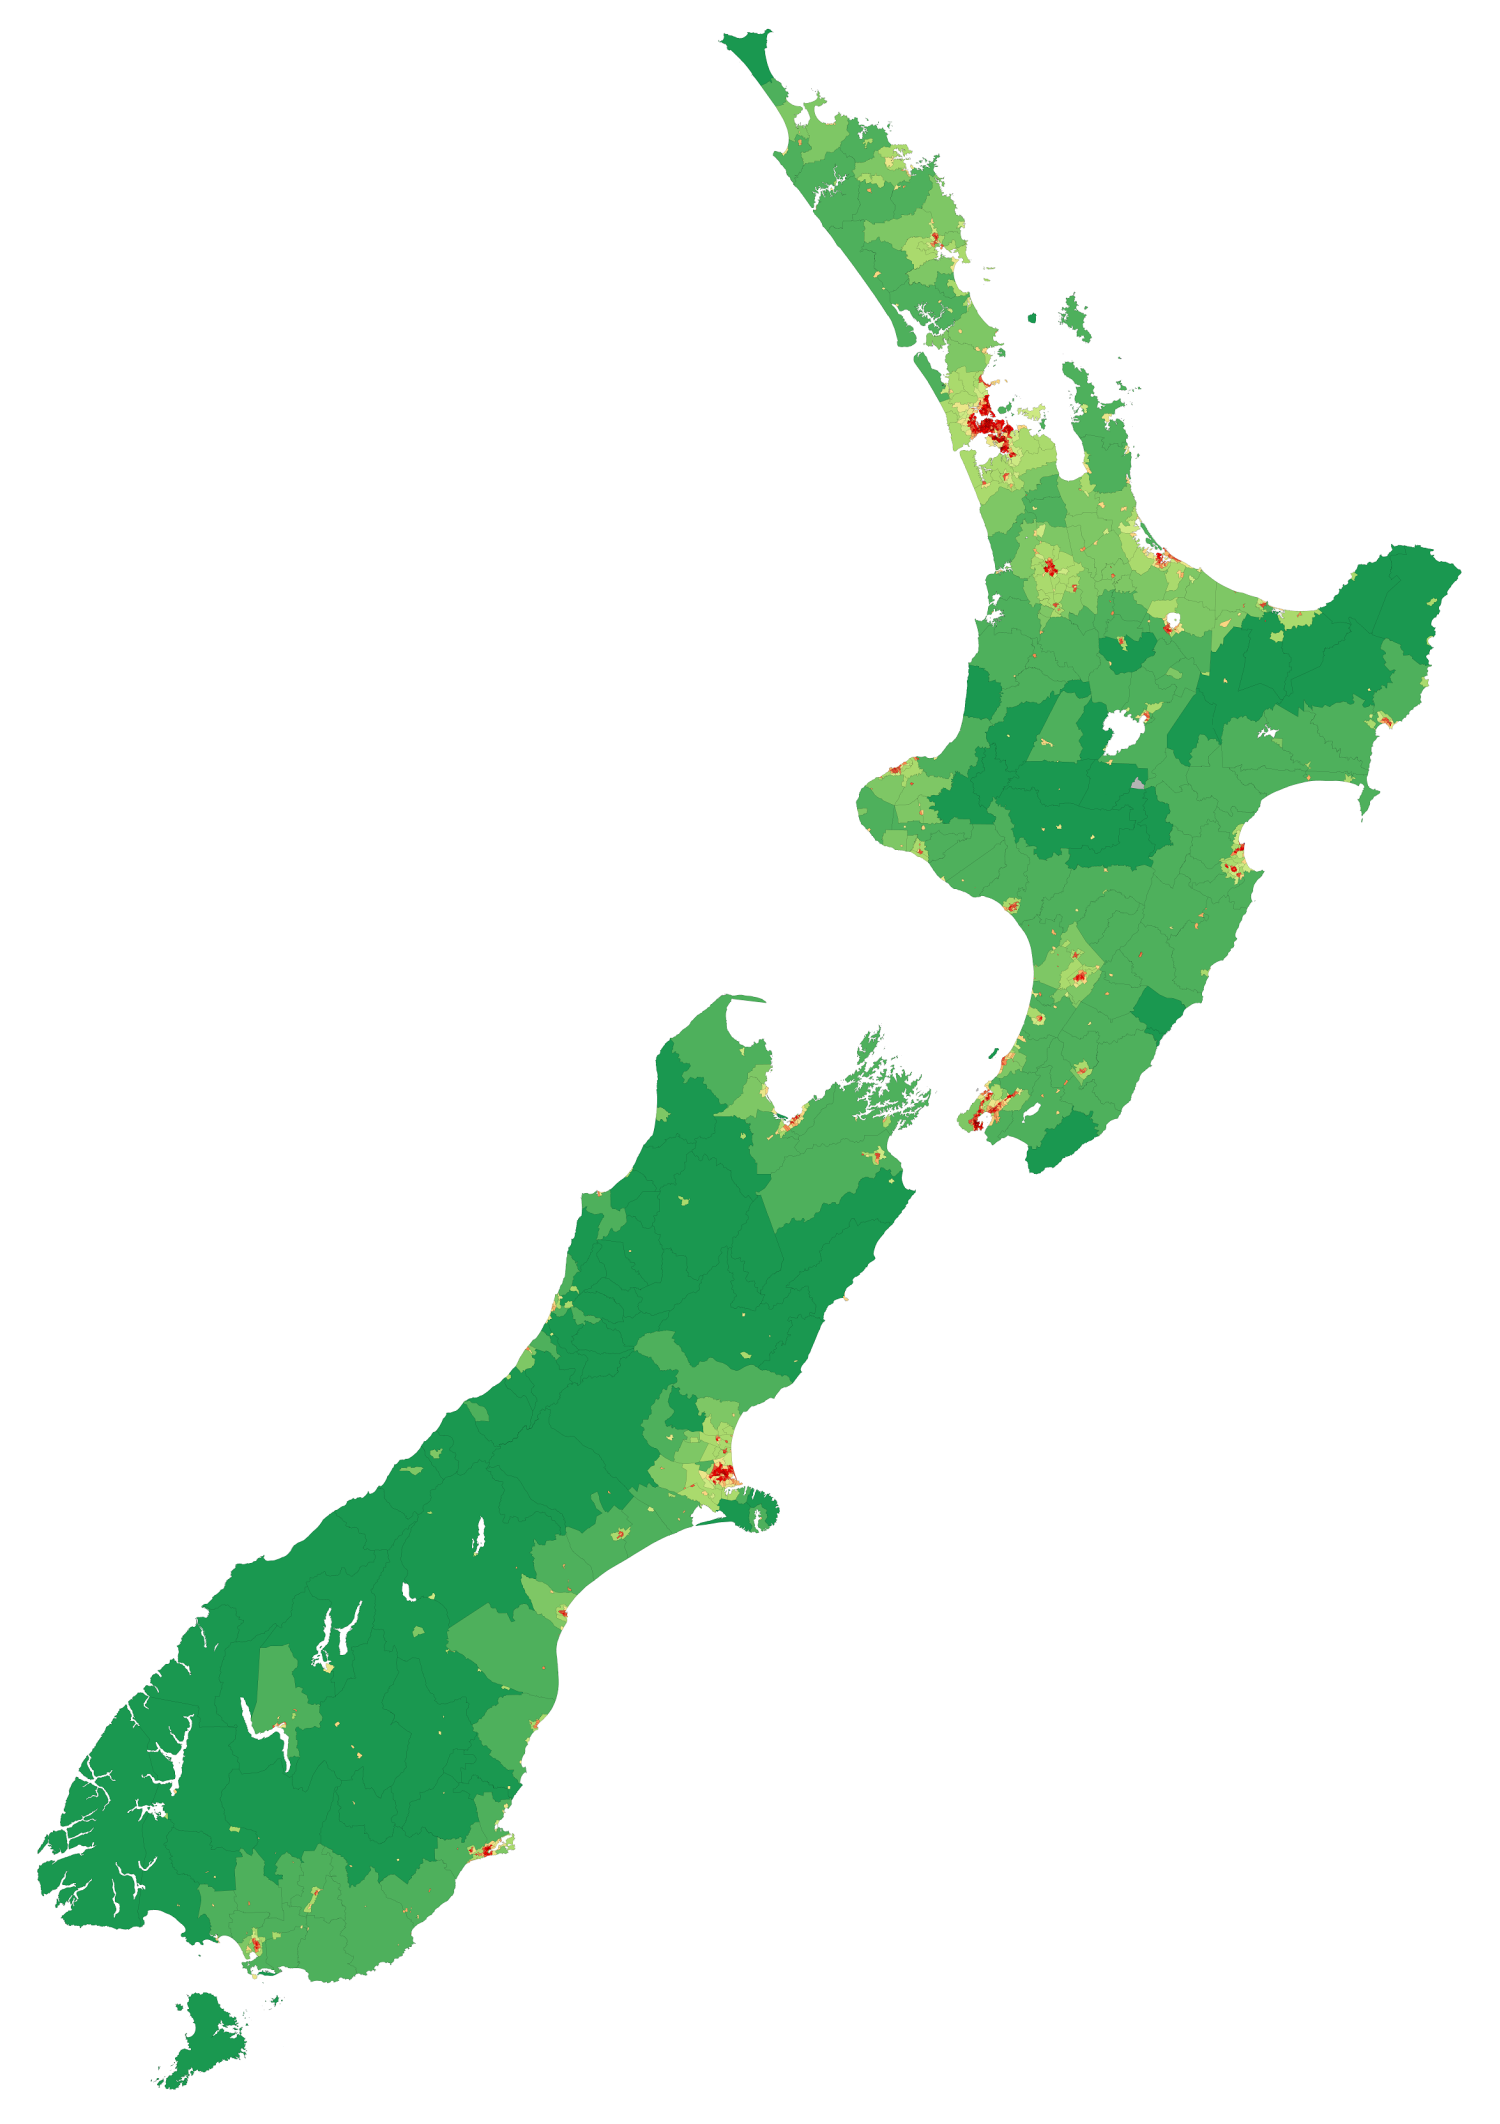 Map showing population density of New Zealand ...